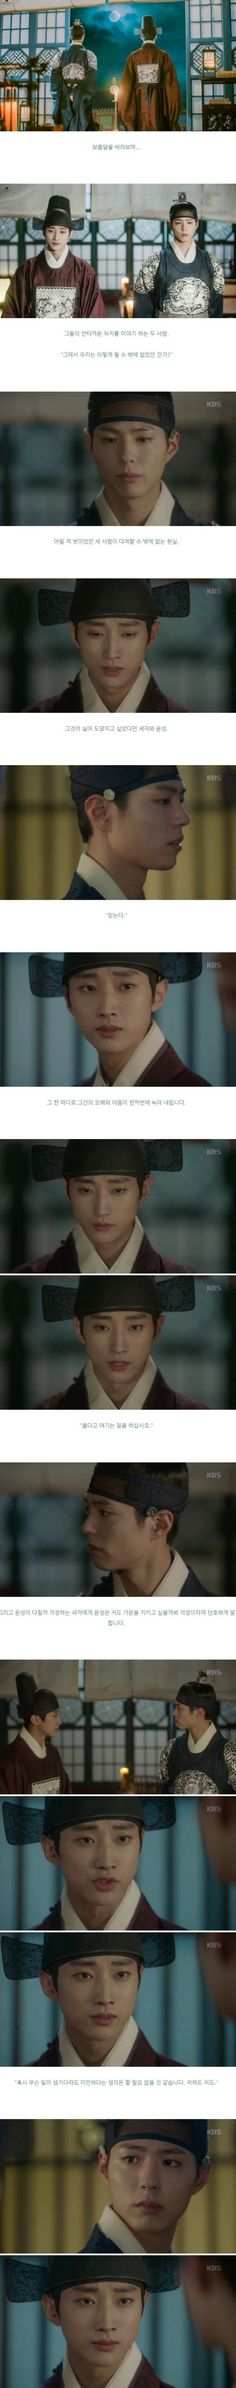 Added episode 17 captures for the Korean drama 'Moonlight Drawn by Clouds'.